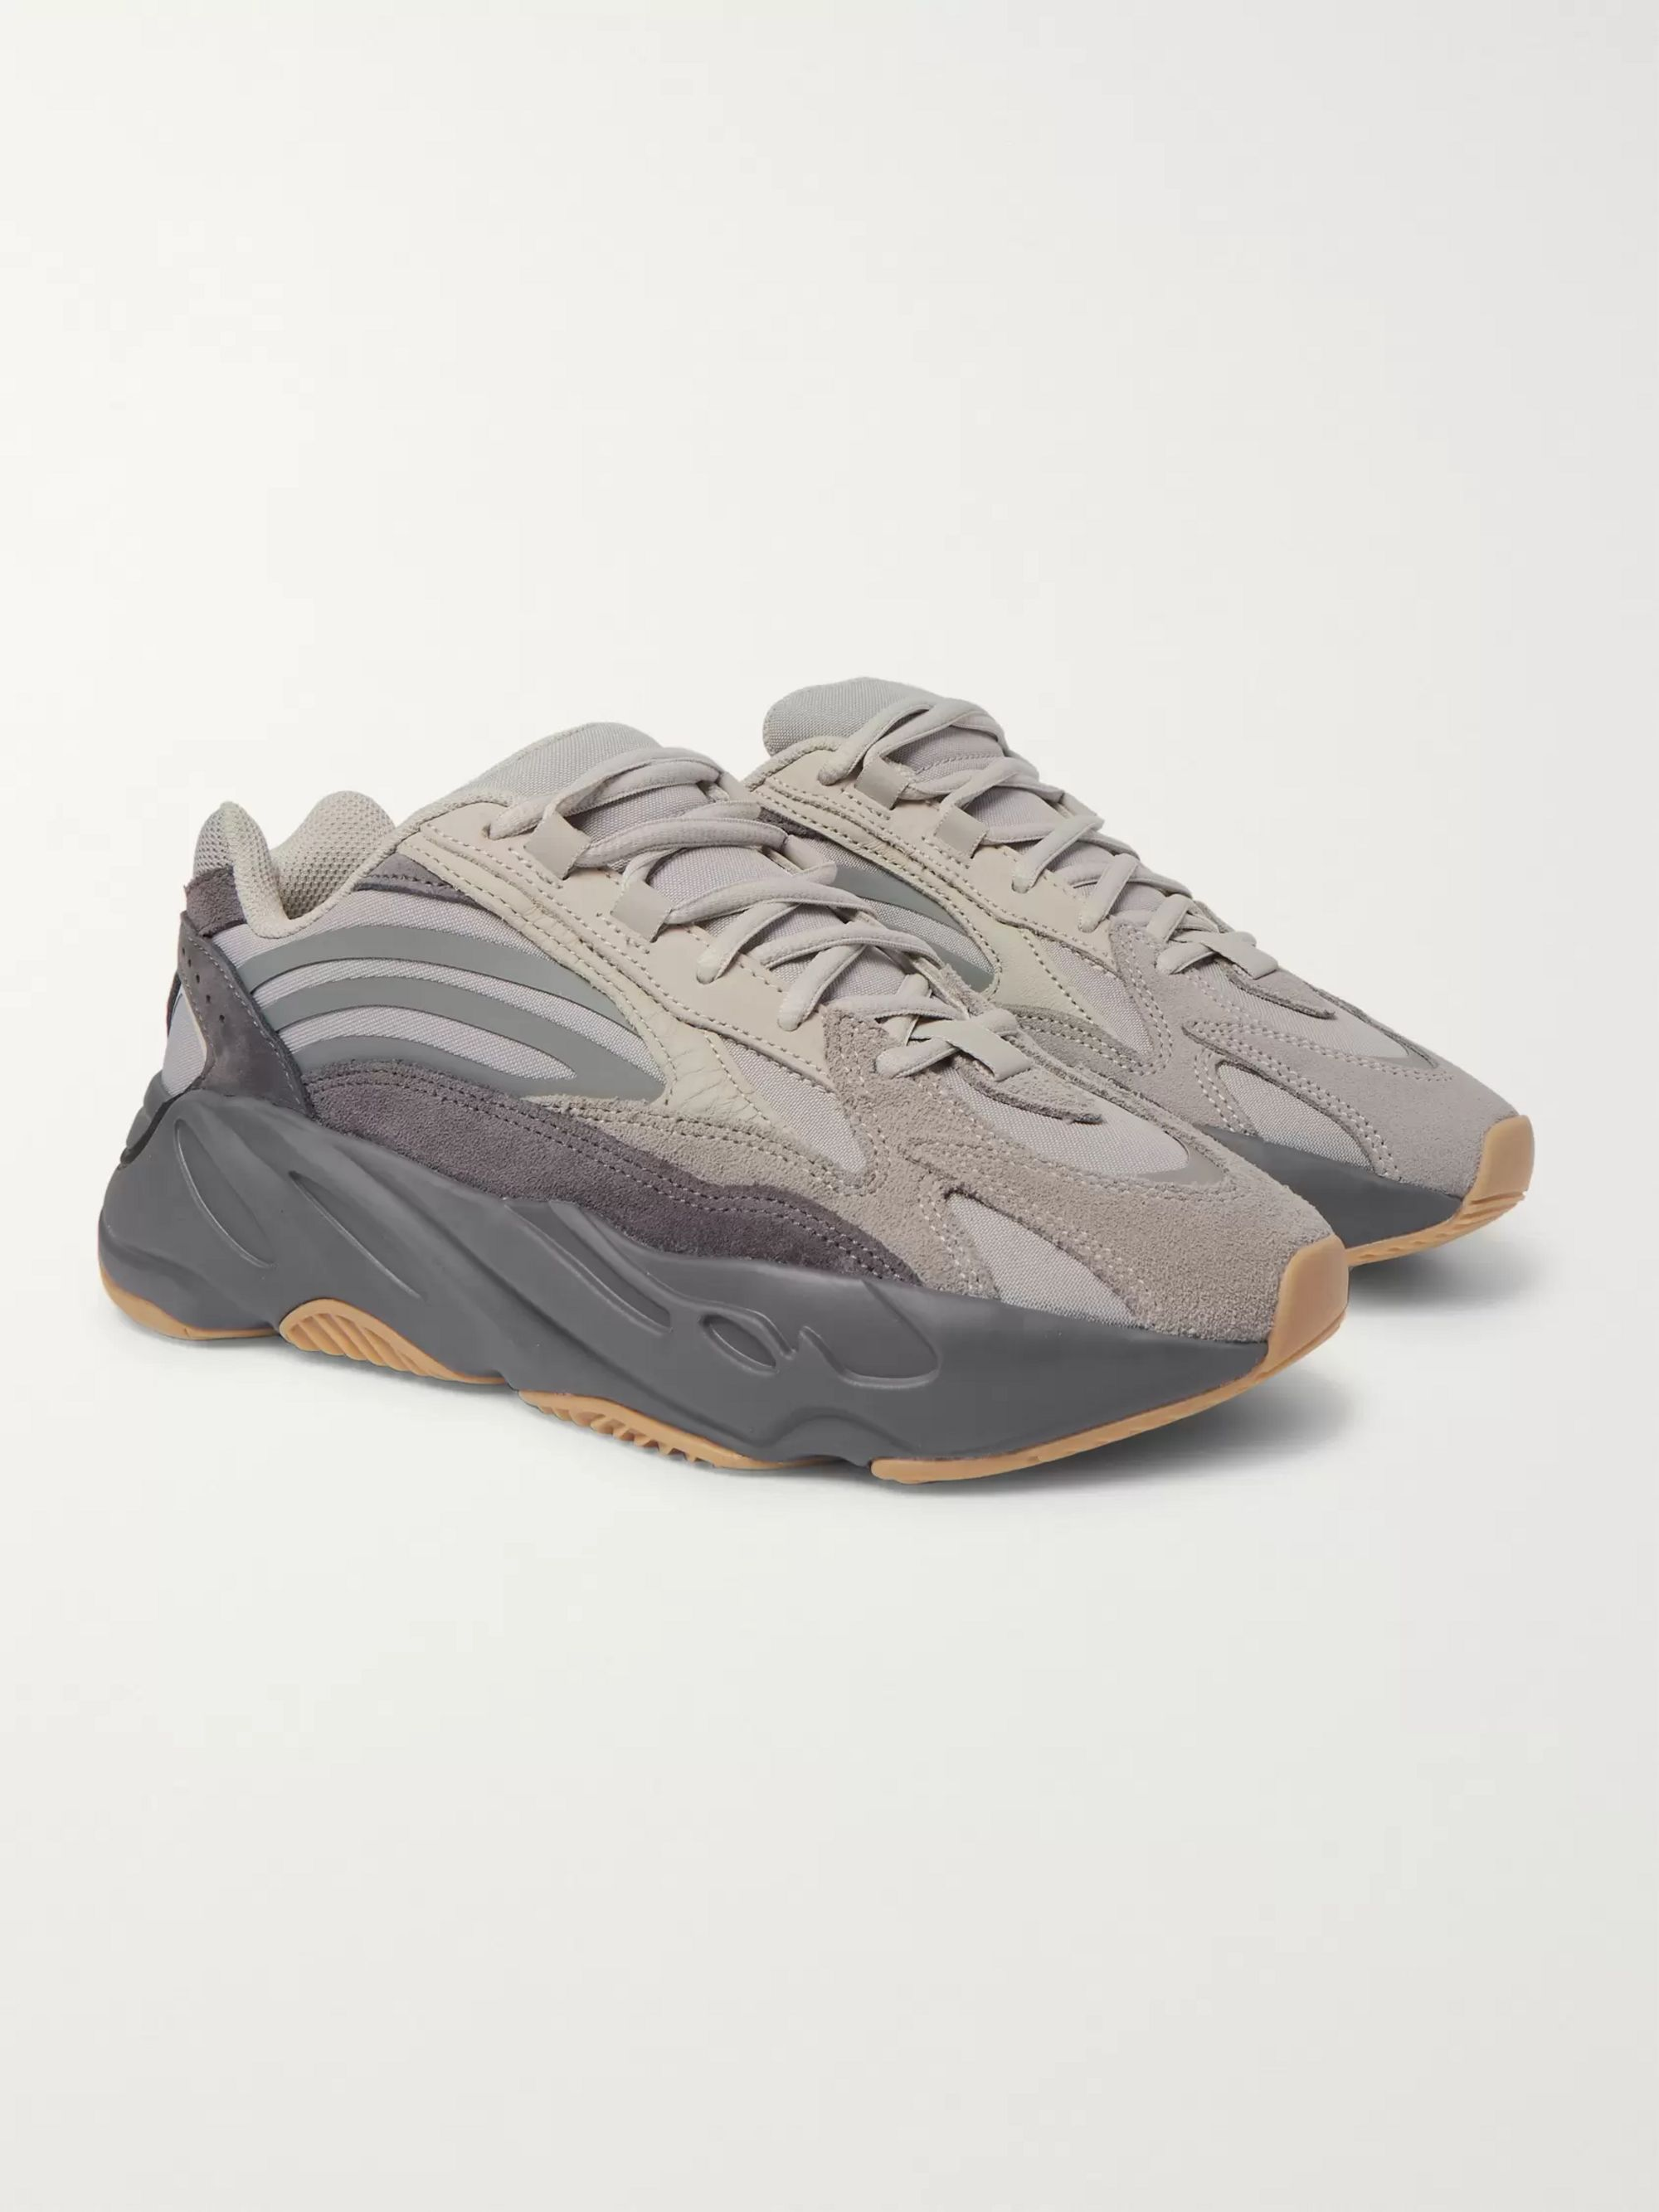 new arrival e1635 4f665 Yeezy Boost 700 V2 Nubuck, Leather and Mesh Sneakers